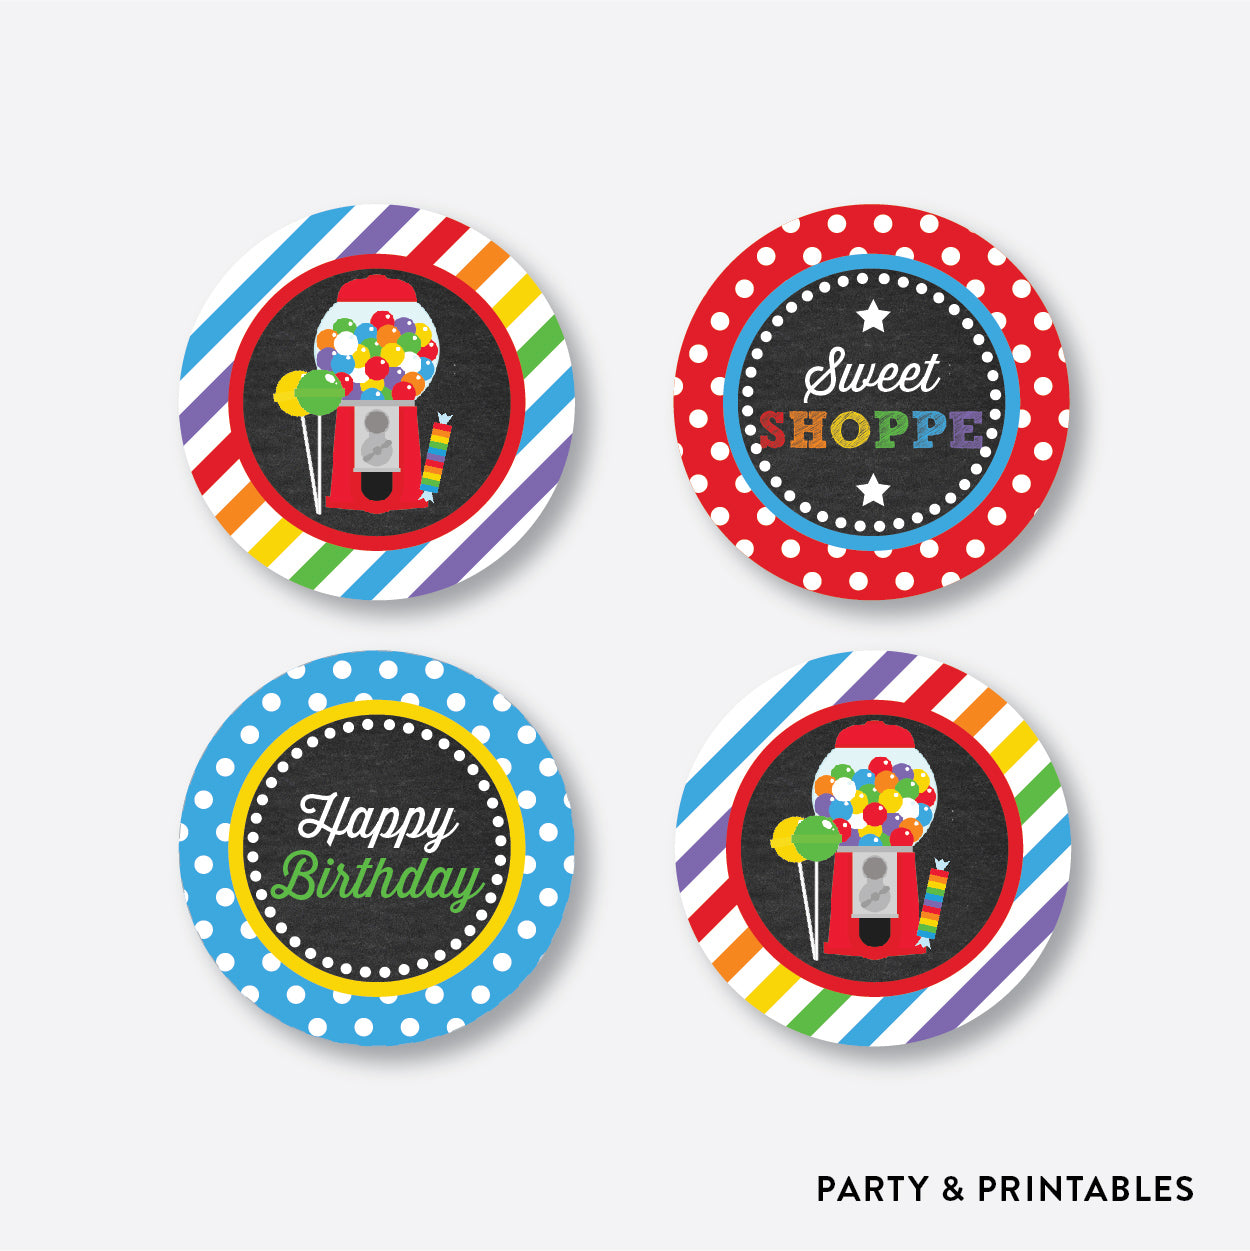 Sweet Shoppe Chalkboard Cupcake Toppers / Non-Personalized / Instant Download (CKB.84), party printables - Party and Printables